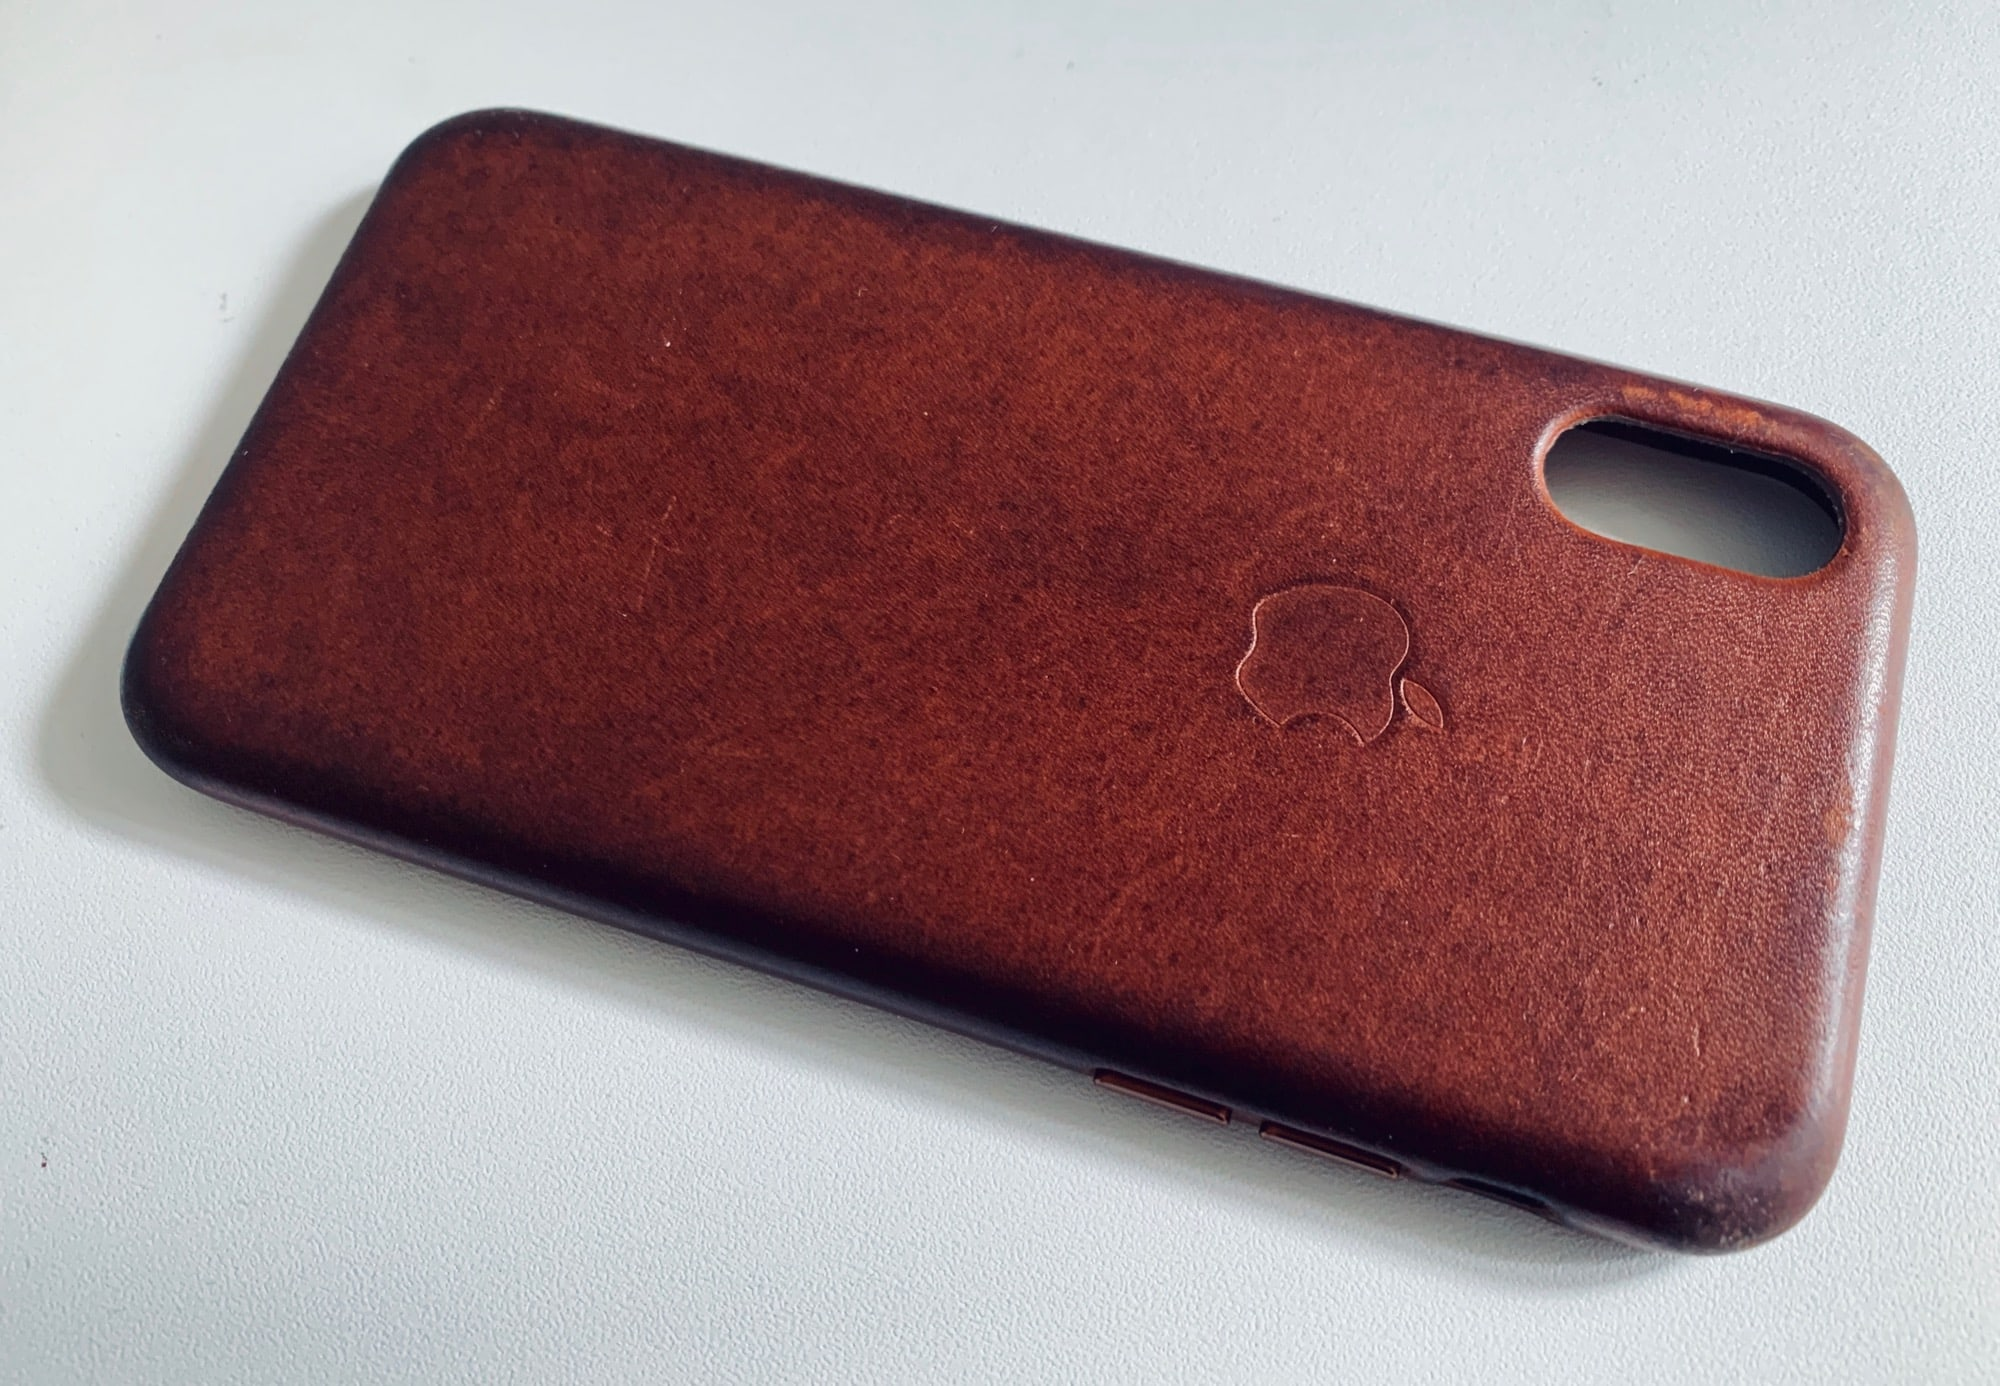 The brown and black leather cases are the only ones that get better with use.